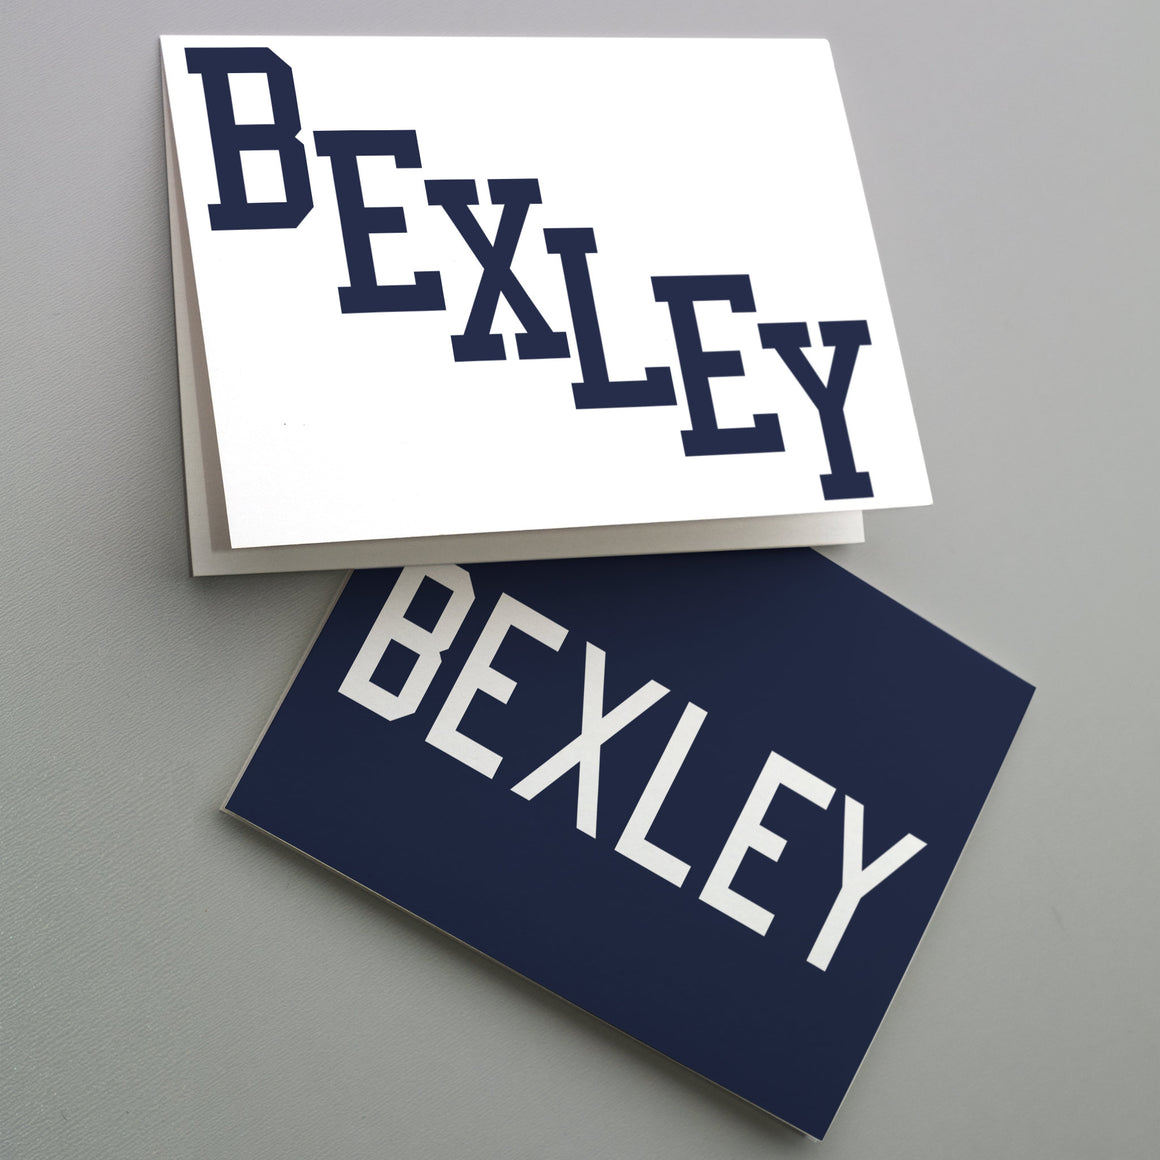 Bexley Ohio Greeting Cards - 24 Pack